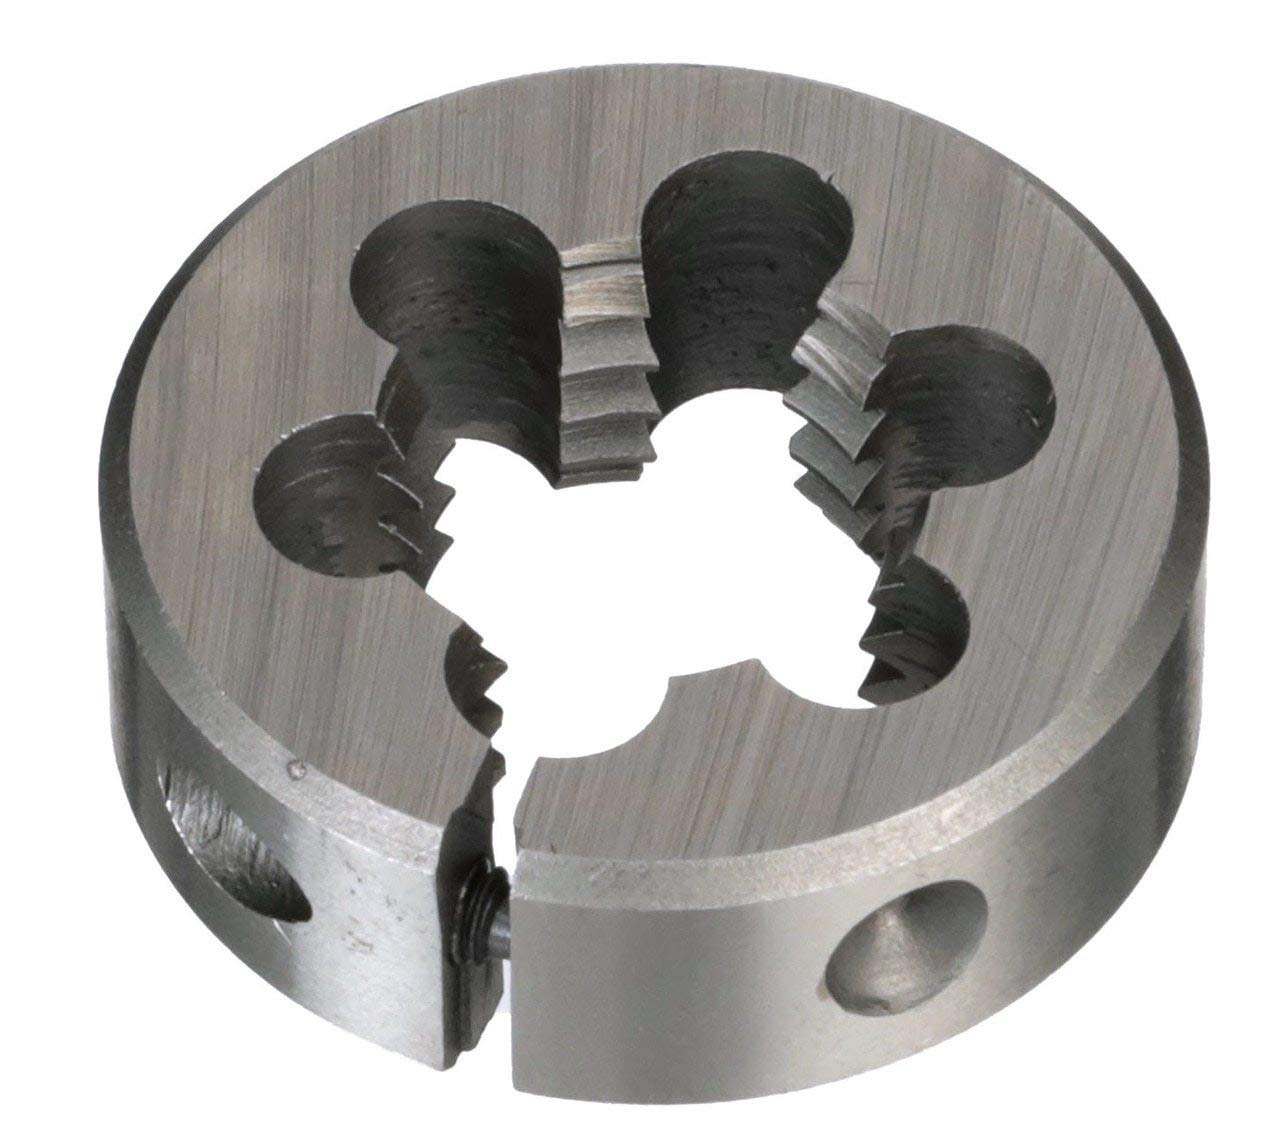 "M11 X .75 X 1/"" HIGH SPEED STEEL ROUND ADJUSTABLE DIE"